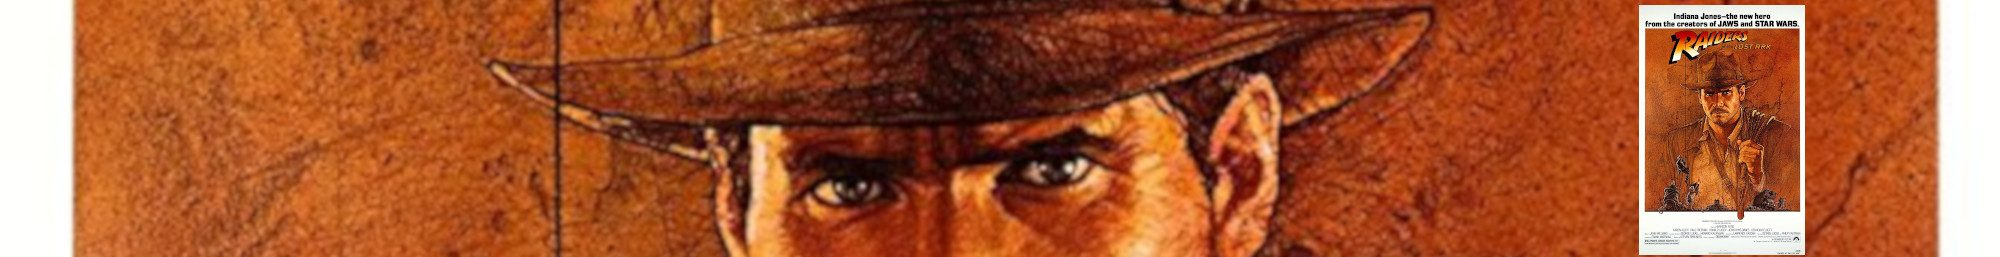 Raiders of the Lost Ark Banner